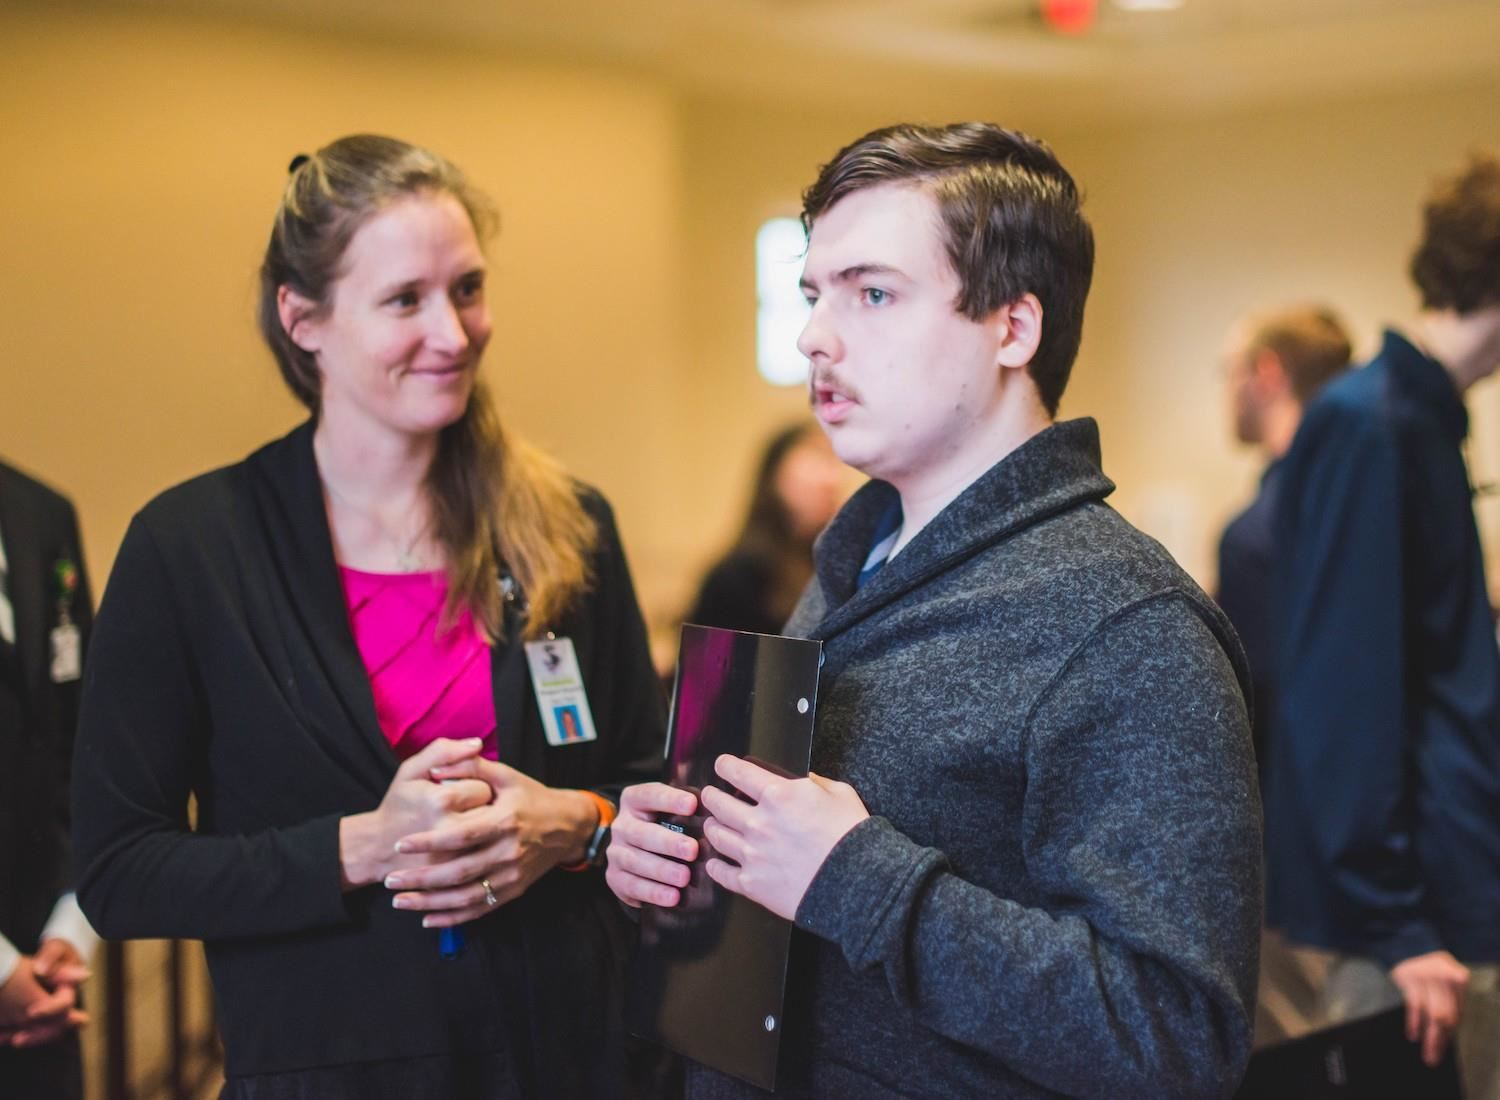 student and teacher talk to potential employee at job fair